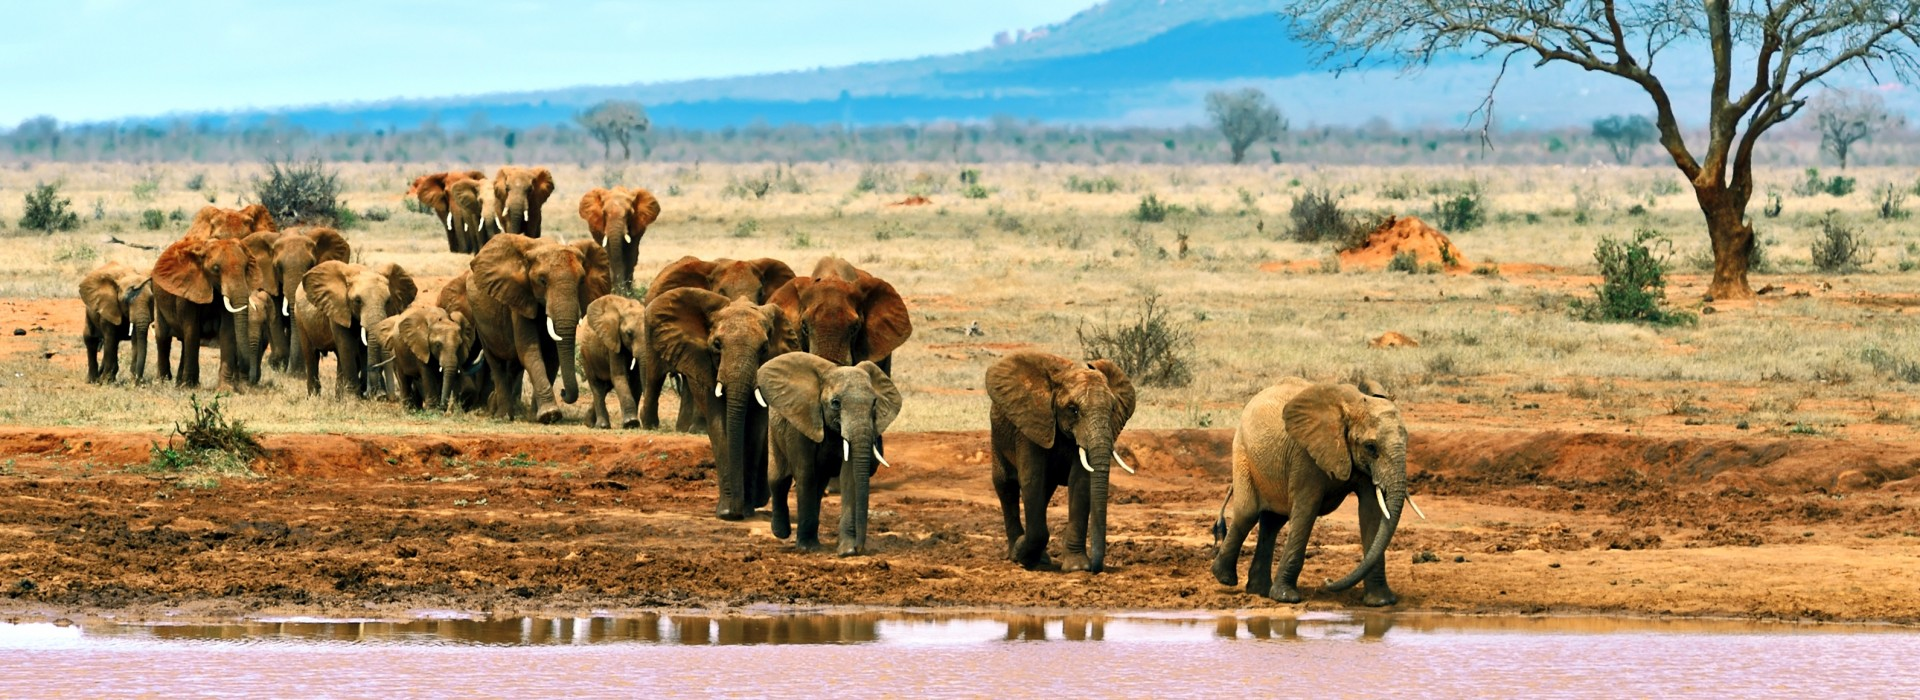 Herds of elephants walking in the Tsavo East National Park